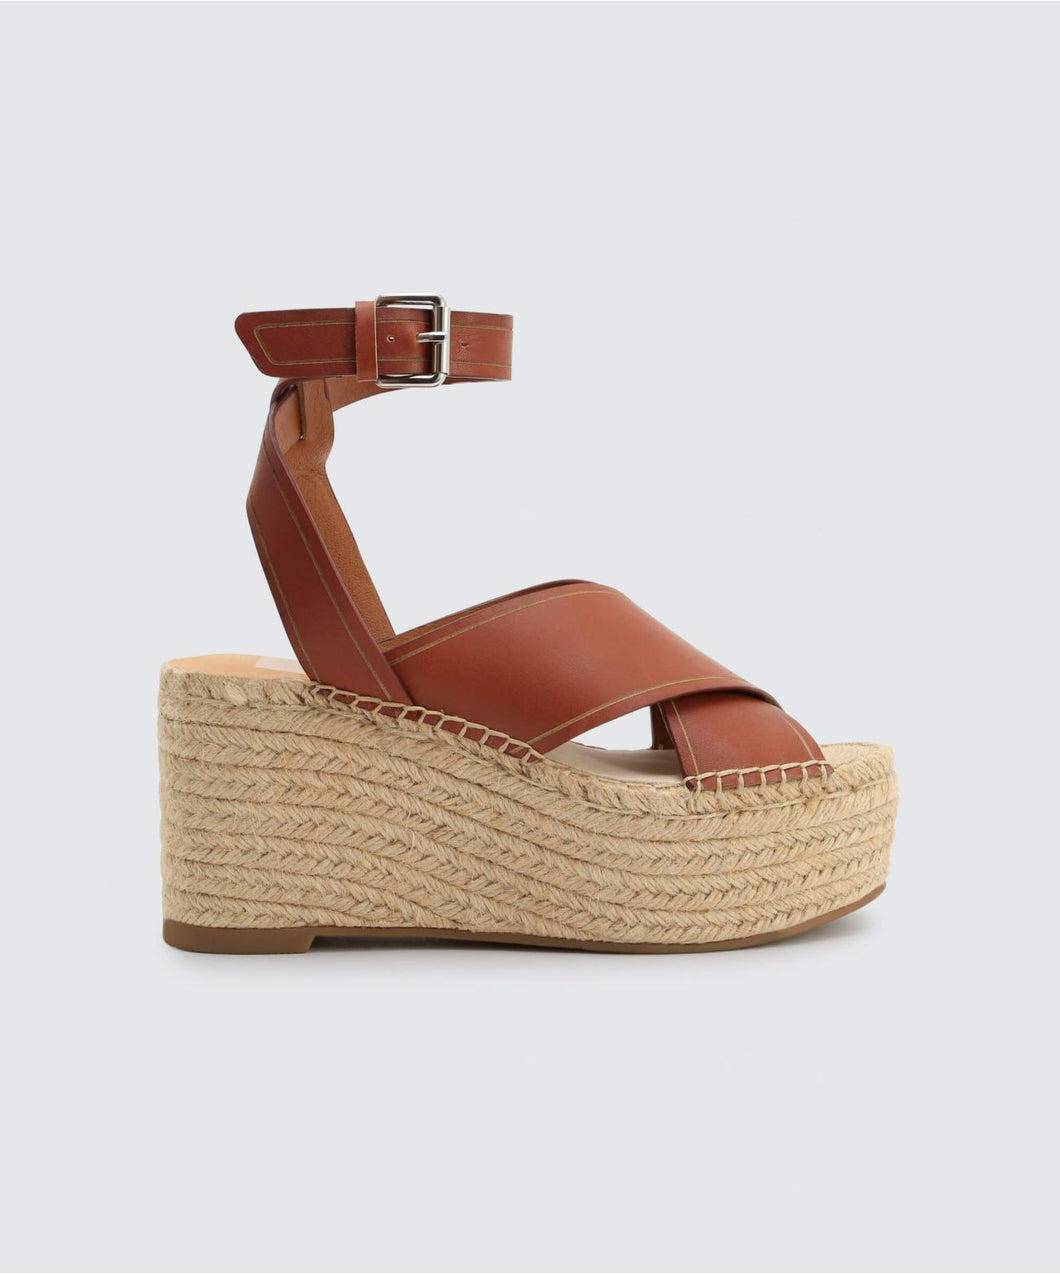 CARSIE WEDGES IN BROWN -   Dolce Vita